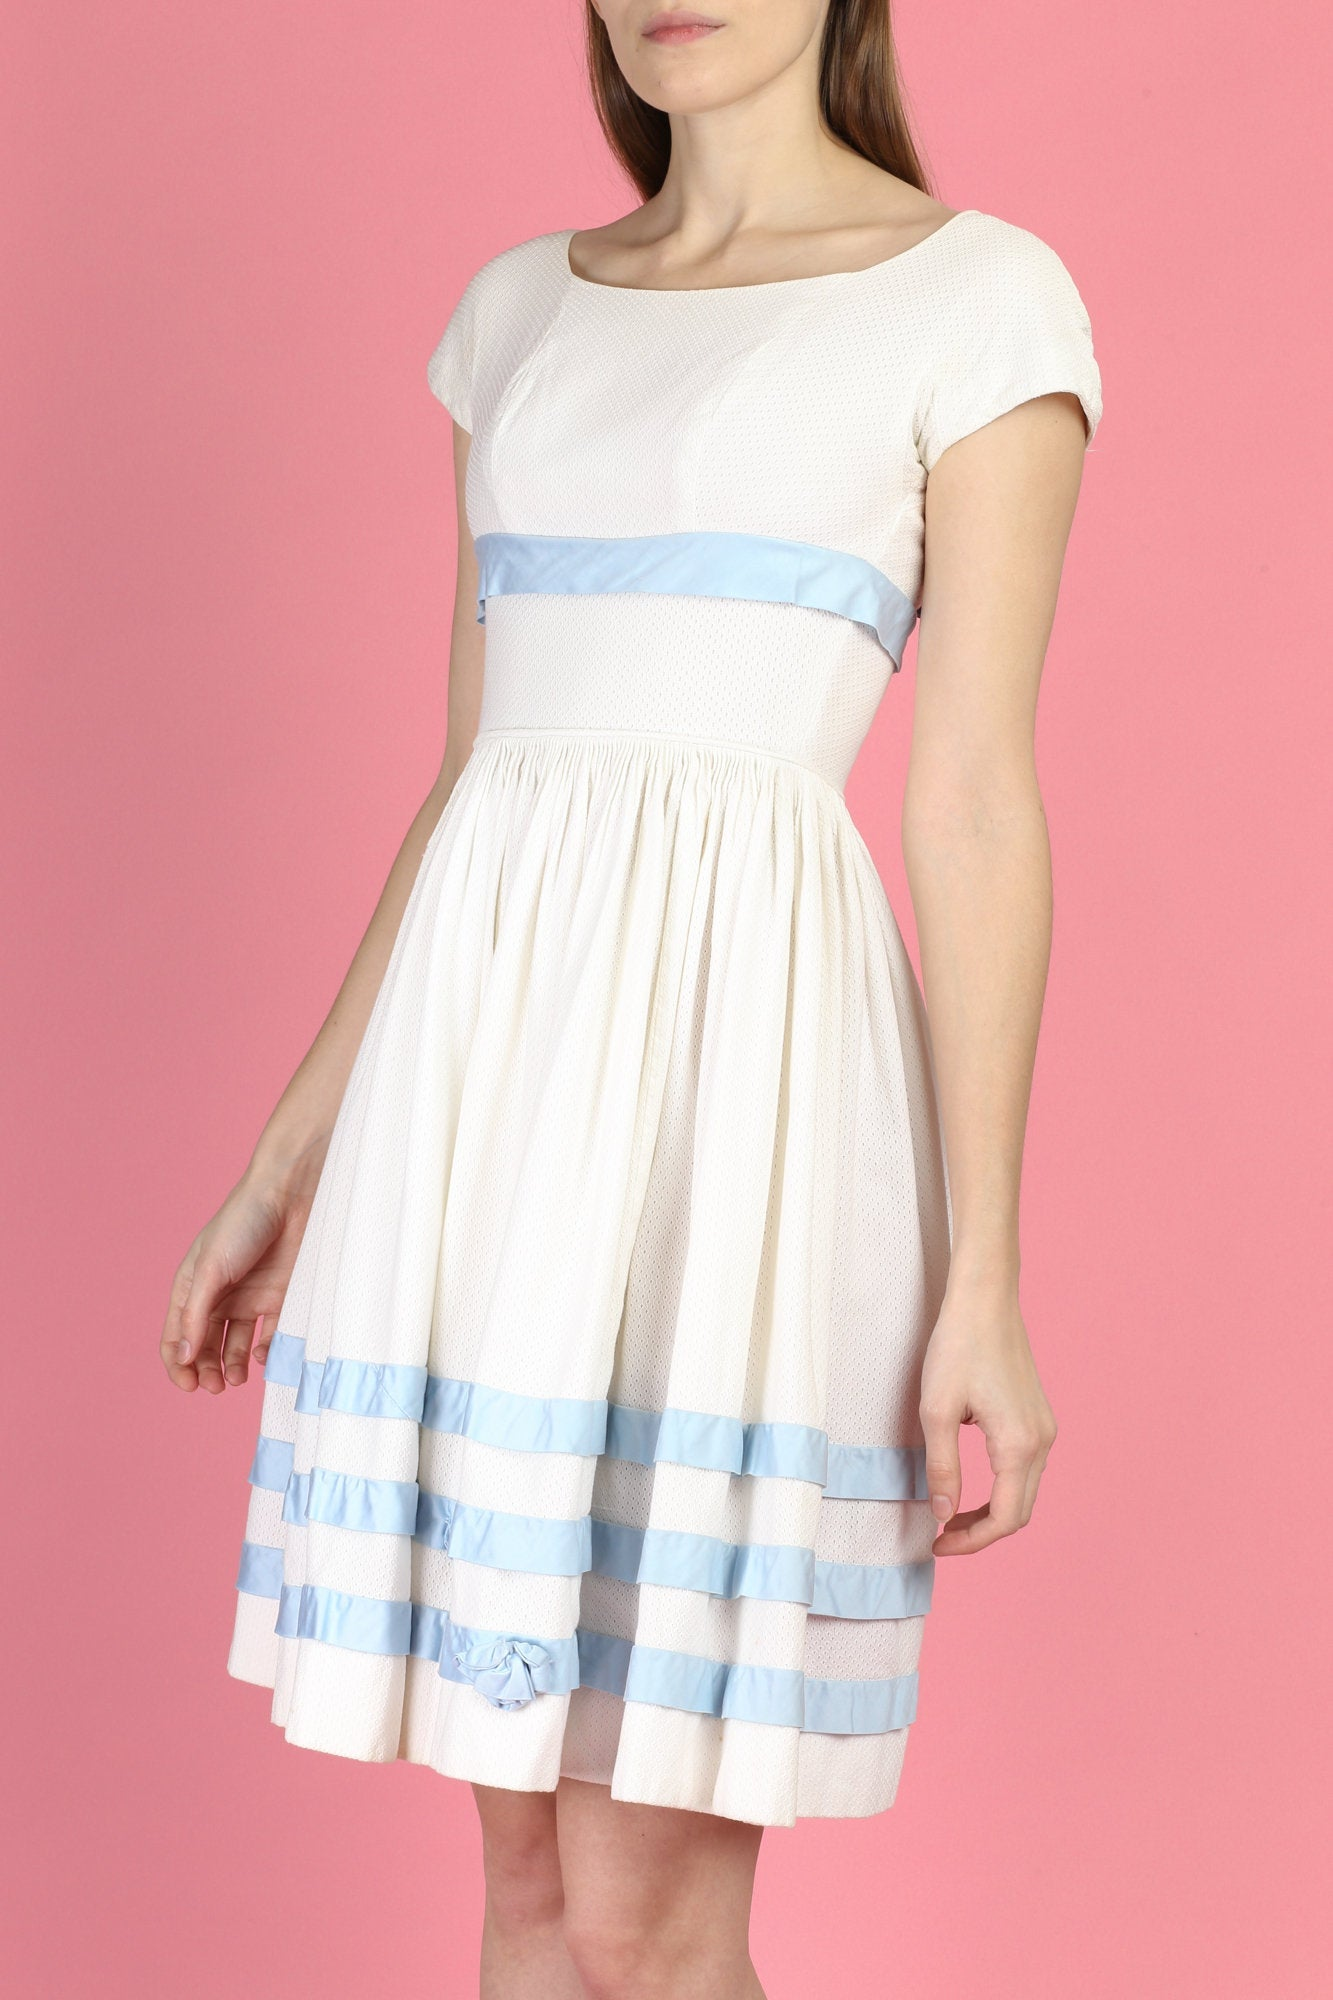 50s 60s Boho White & Blue Cotton Day Dress - XXS